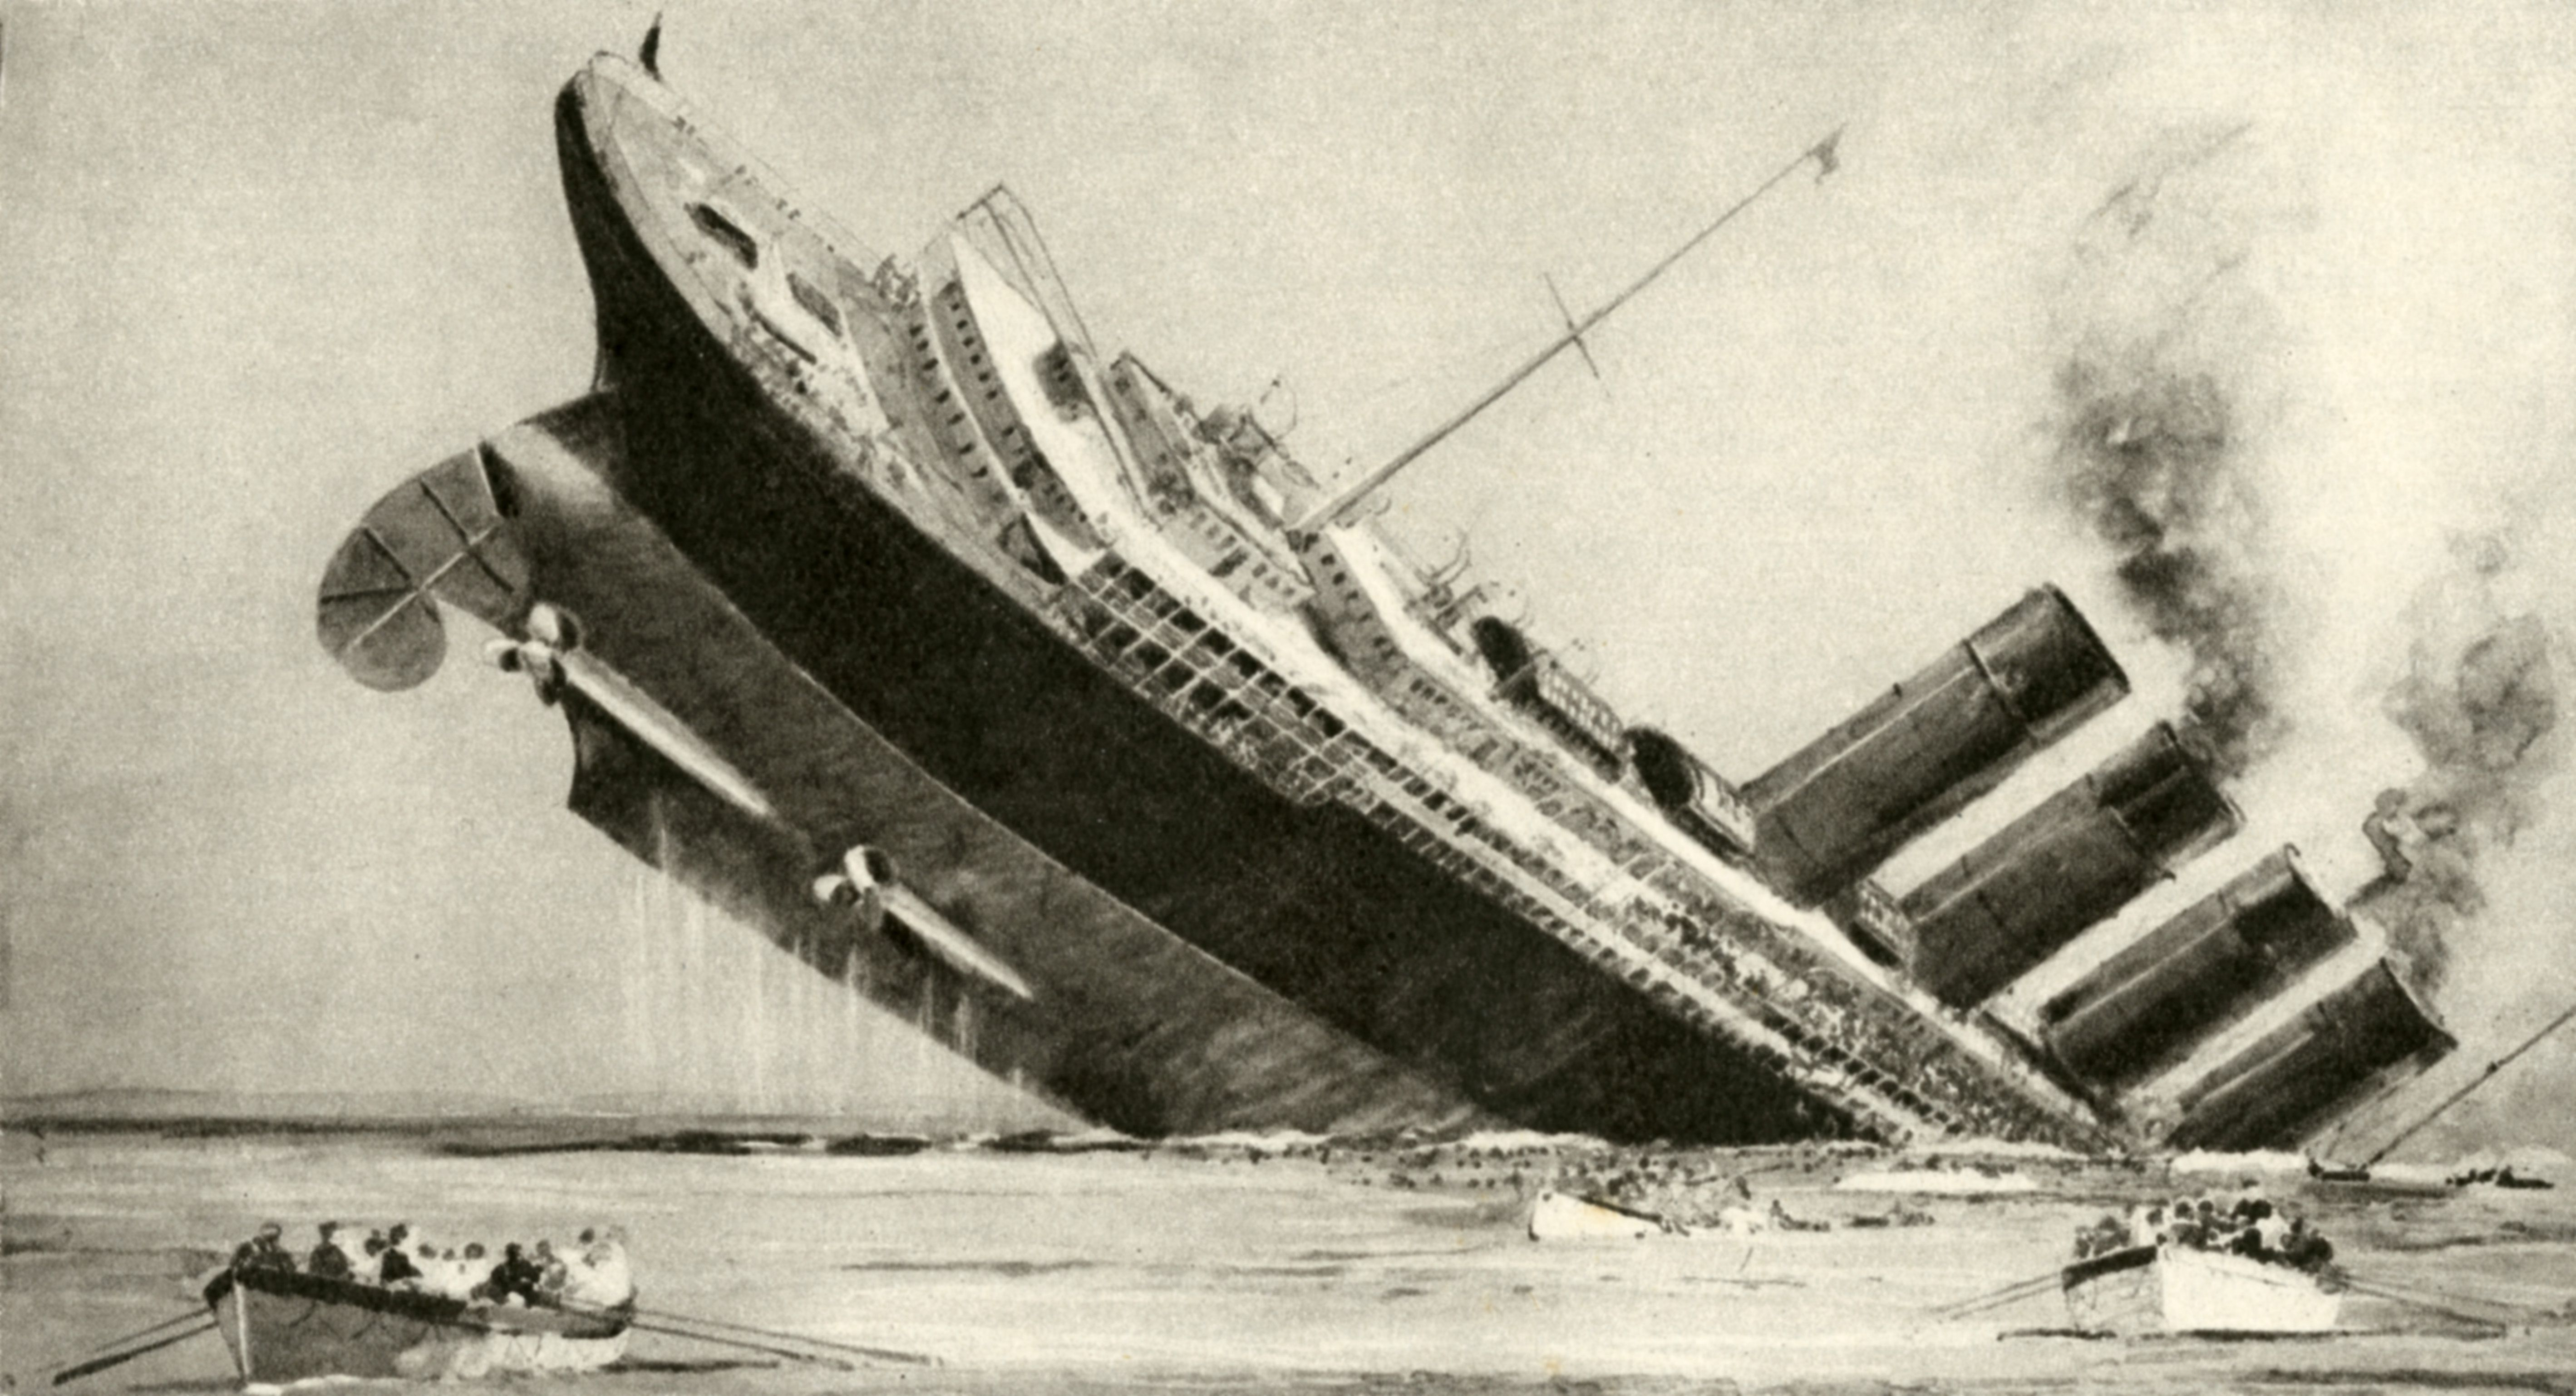 The sinking of the 'Lusitania', 7 May 1915.